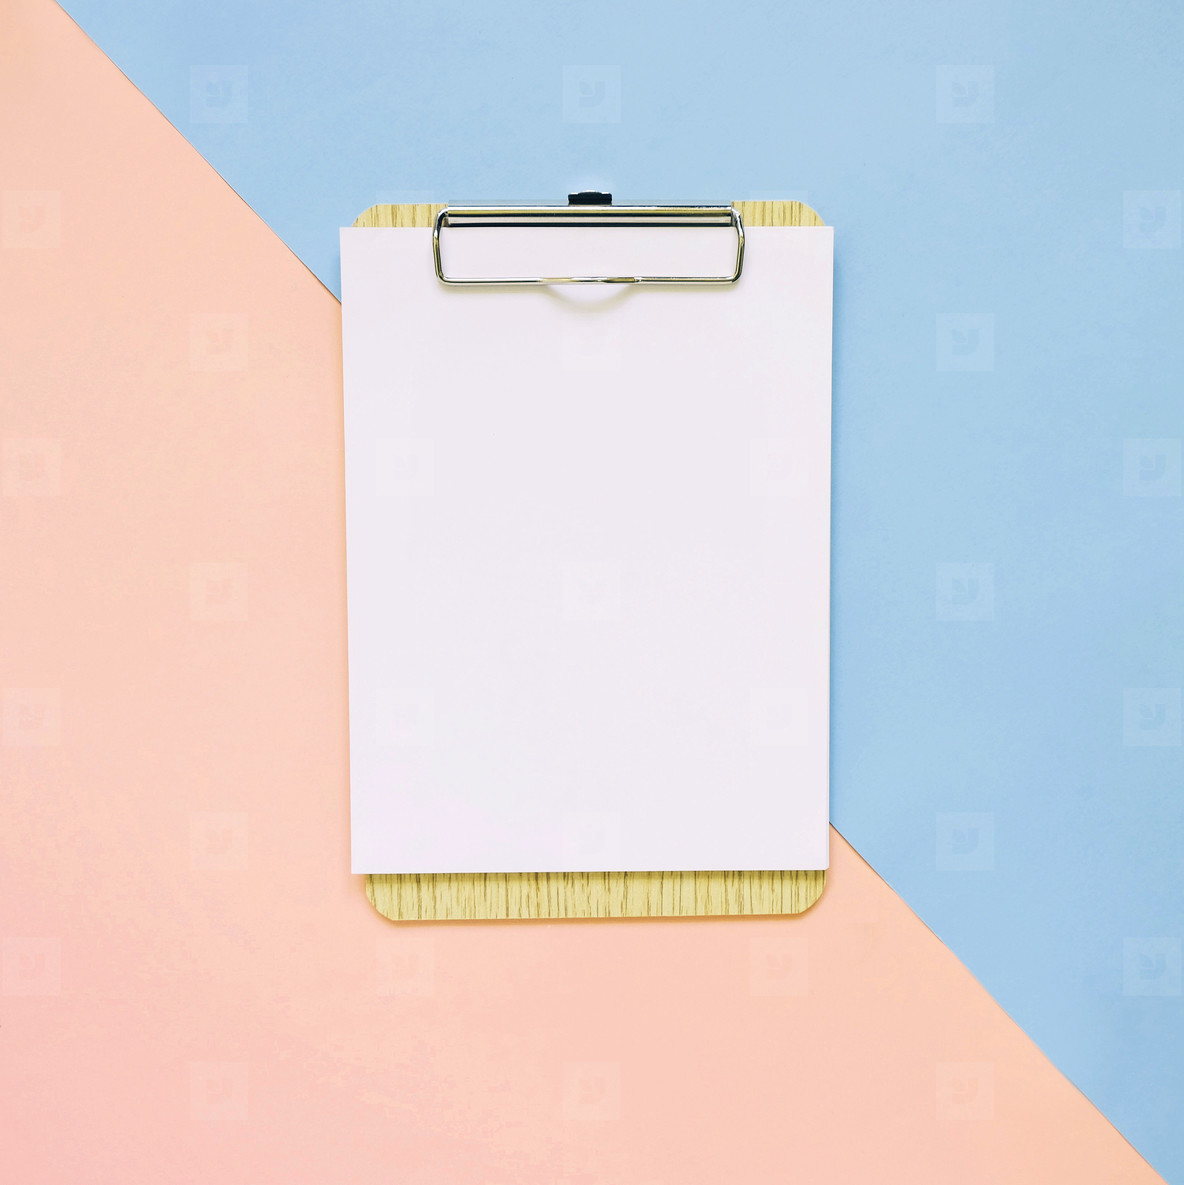 Blank clipboard on pastel color background  minimal style